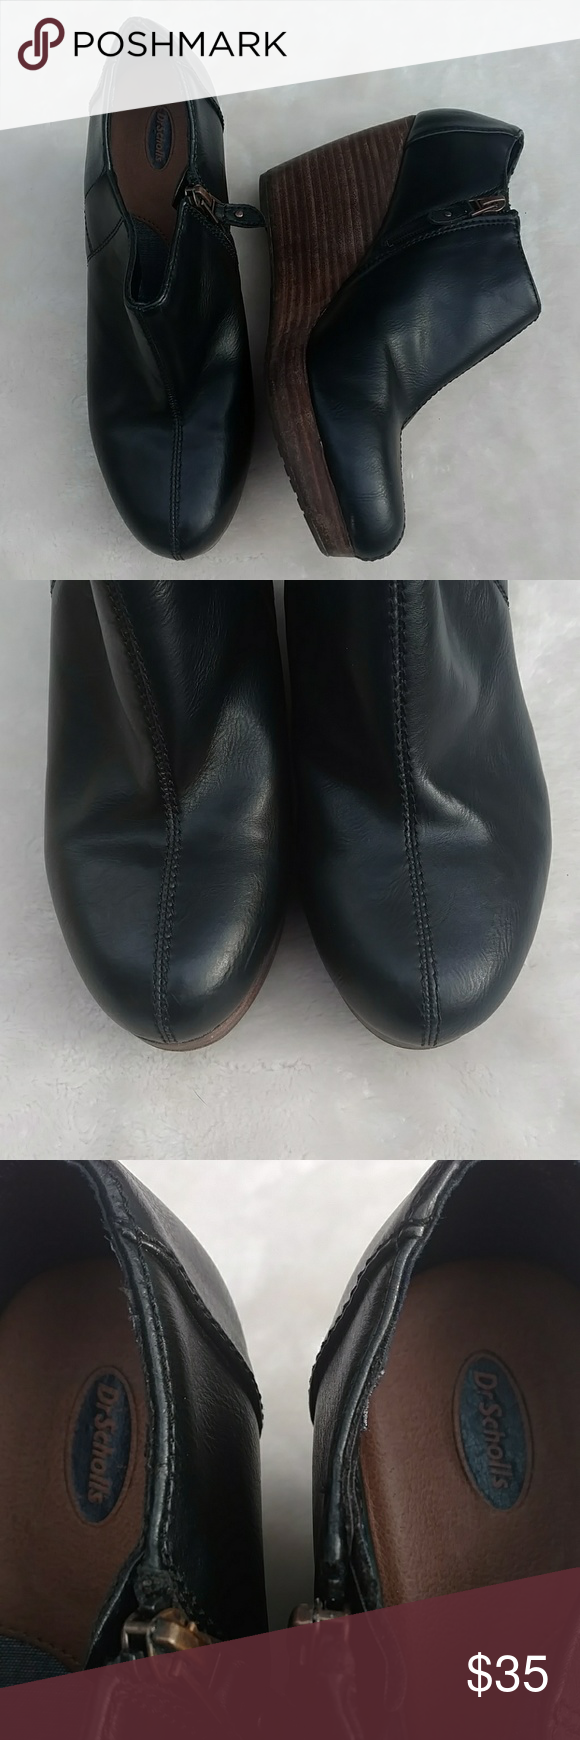 7c938ff44f3 Dr. Scholl s Harlie Wedge Ankle Booties Excellent preowned condition vegan  black leather Harlie wedge ankle